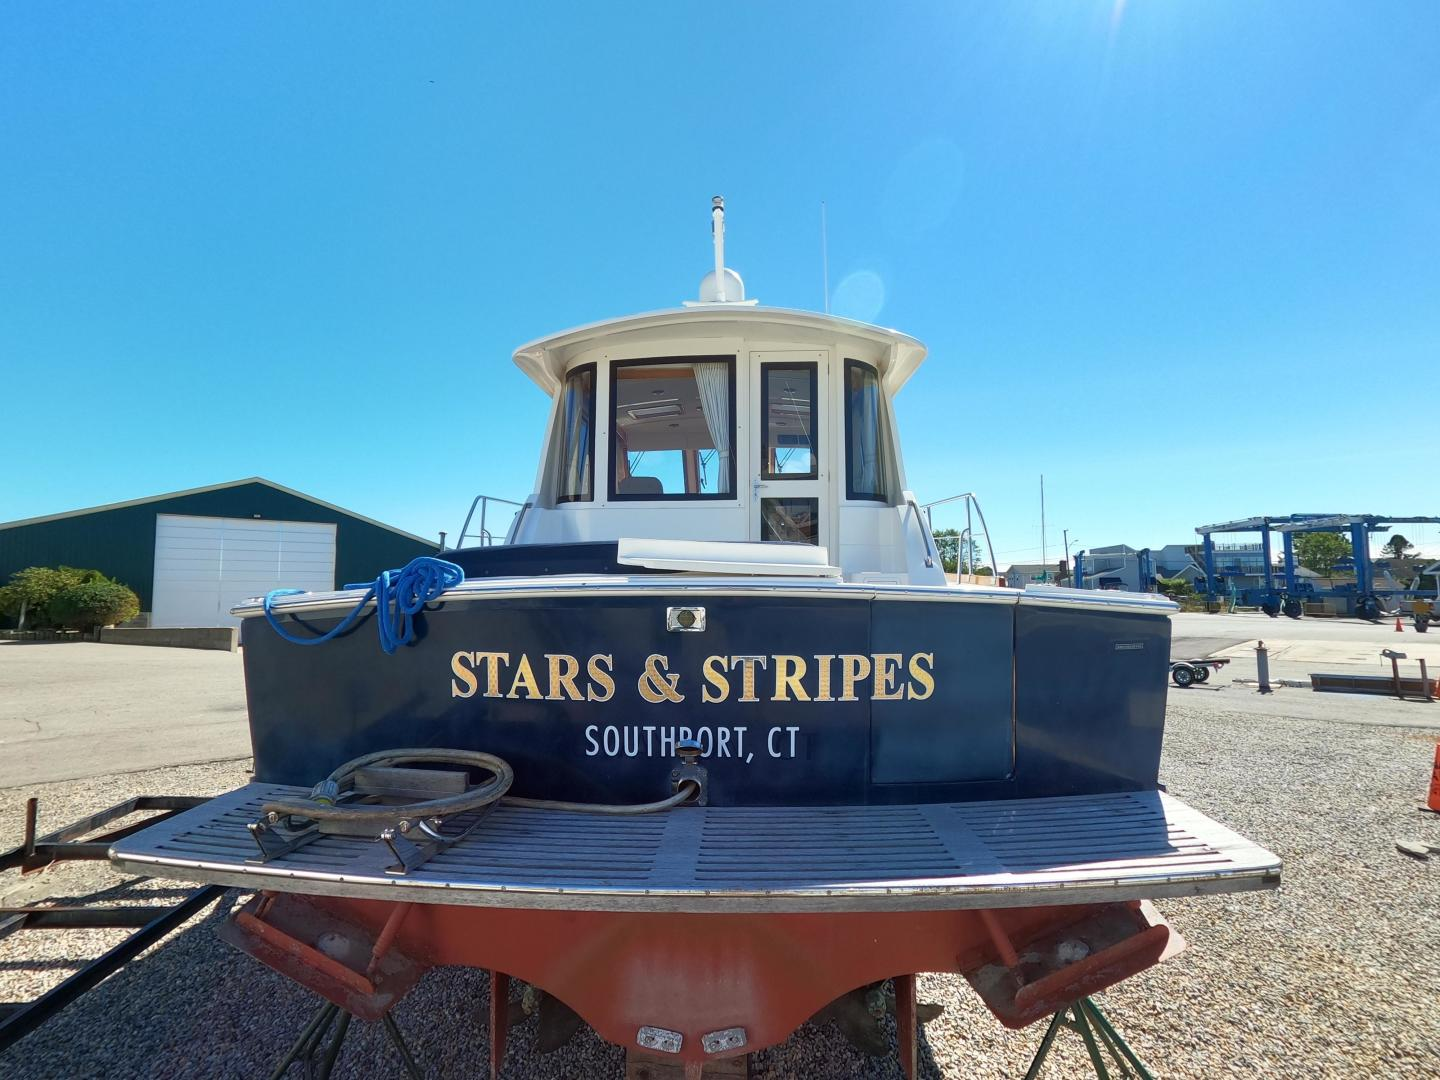 Grand Banks-39 Eastbay SX 2006-Stars & Stripes Westbrook-Connecticut-United States-1591172 | Thumbnail